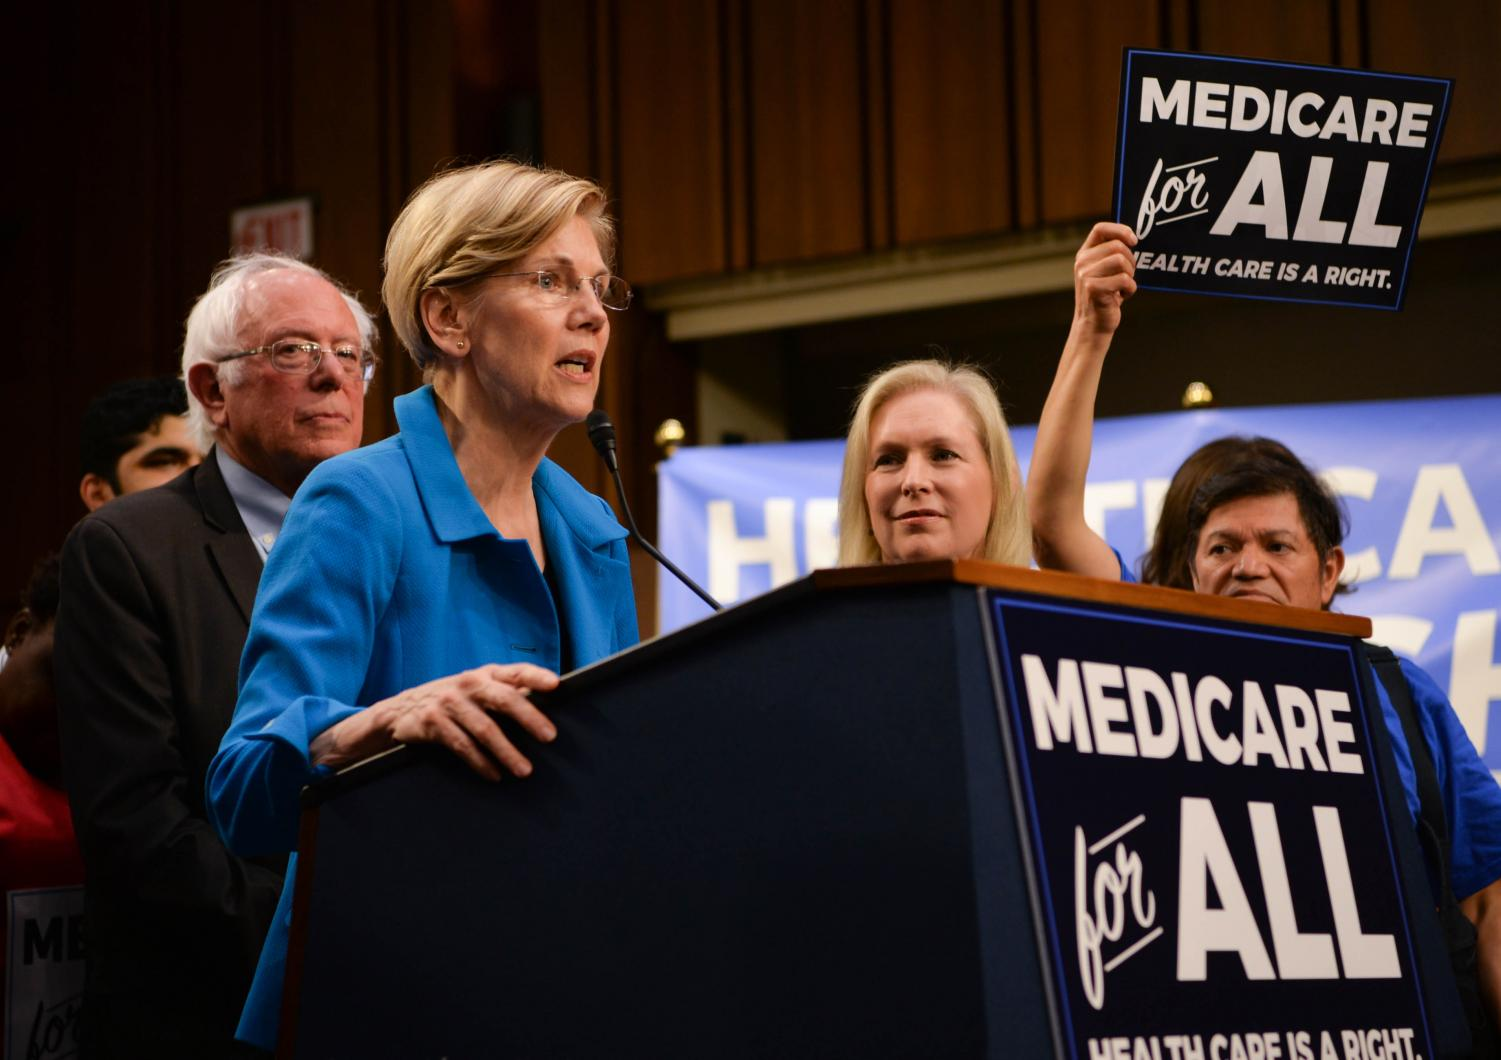 Sen. Elizabeth Warren, D-Mass., speaks on the platform of Medicare for All, which raises taxes for middle and upper-class, but brings the overall costs of affording healthcare down.